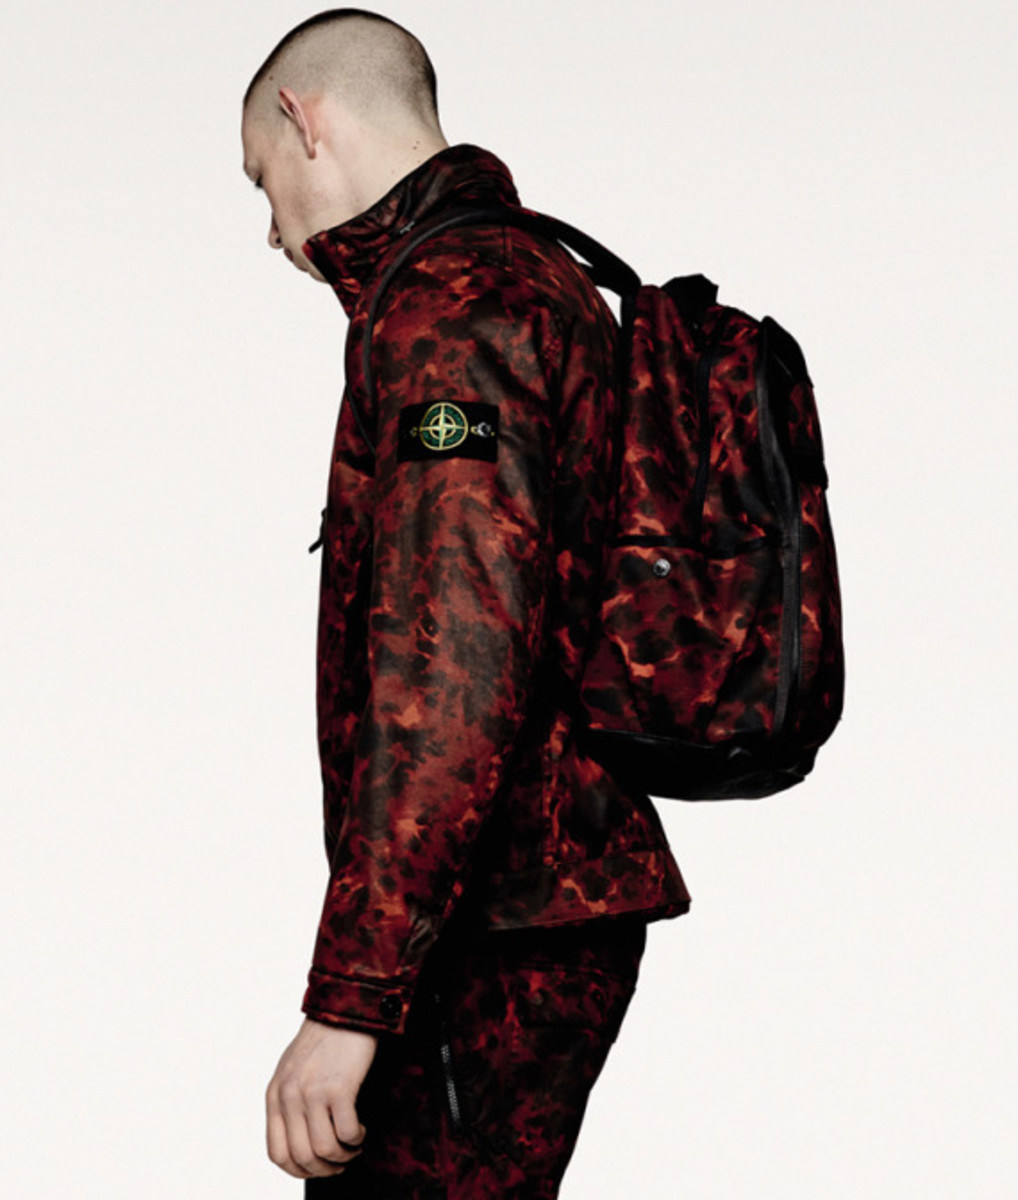 stone-island-fall-winter-2014-tortoise-camouflage-collection-03